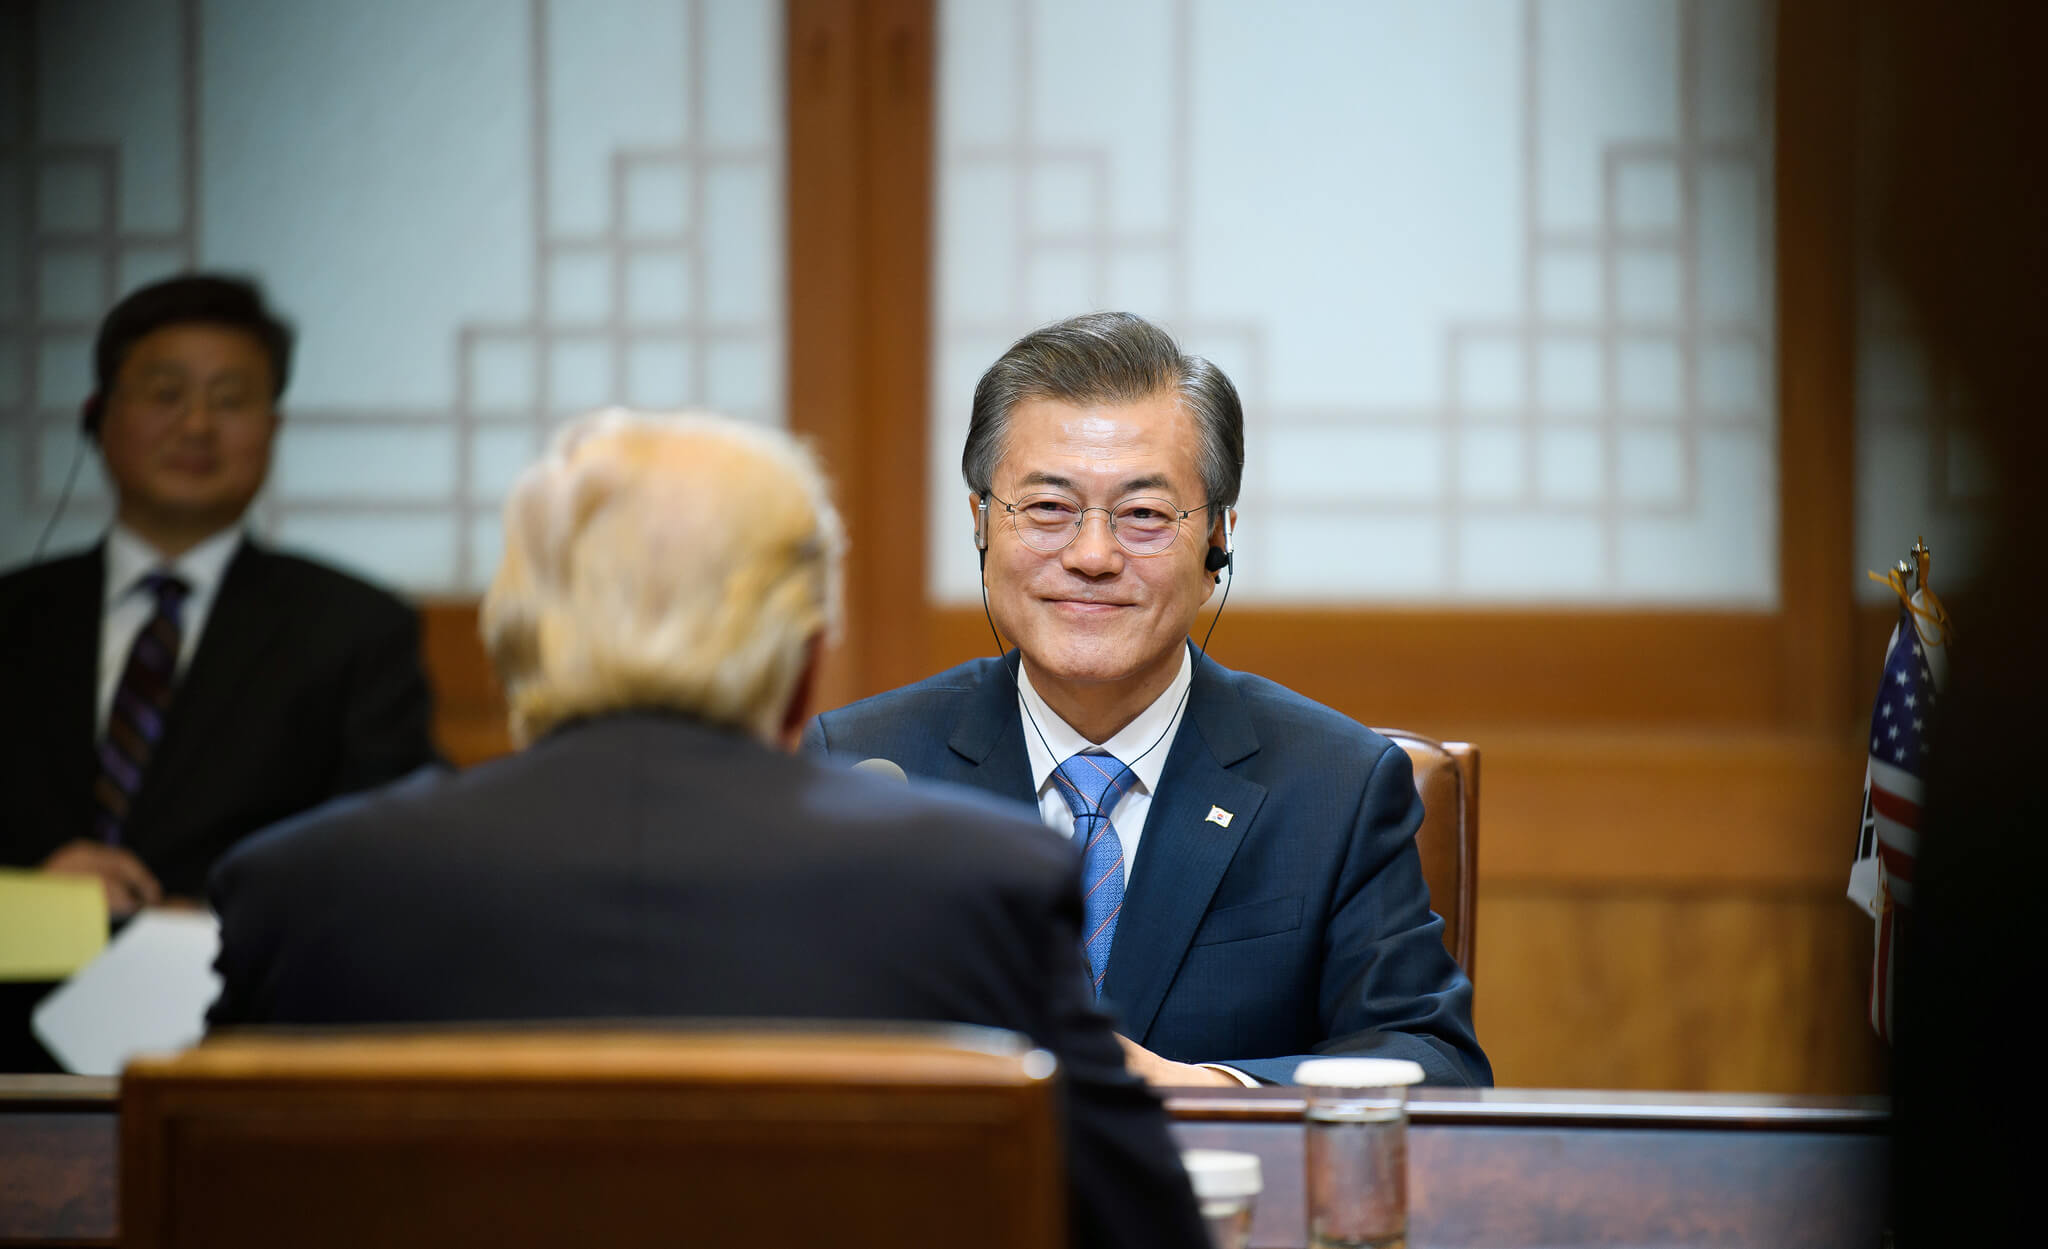 Vogelaar-foto-Zuid-Koreaans president Moon Jae-in en Donald Trump in Seoul in 2017 (8 nov 2017)-Flickr-Republic of Korea